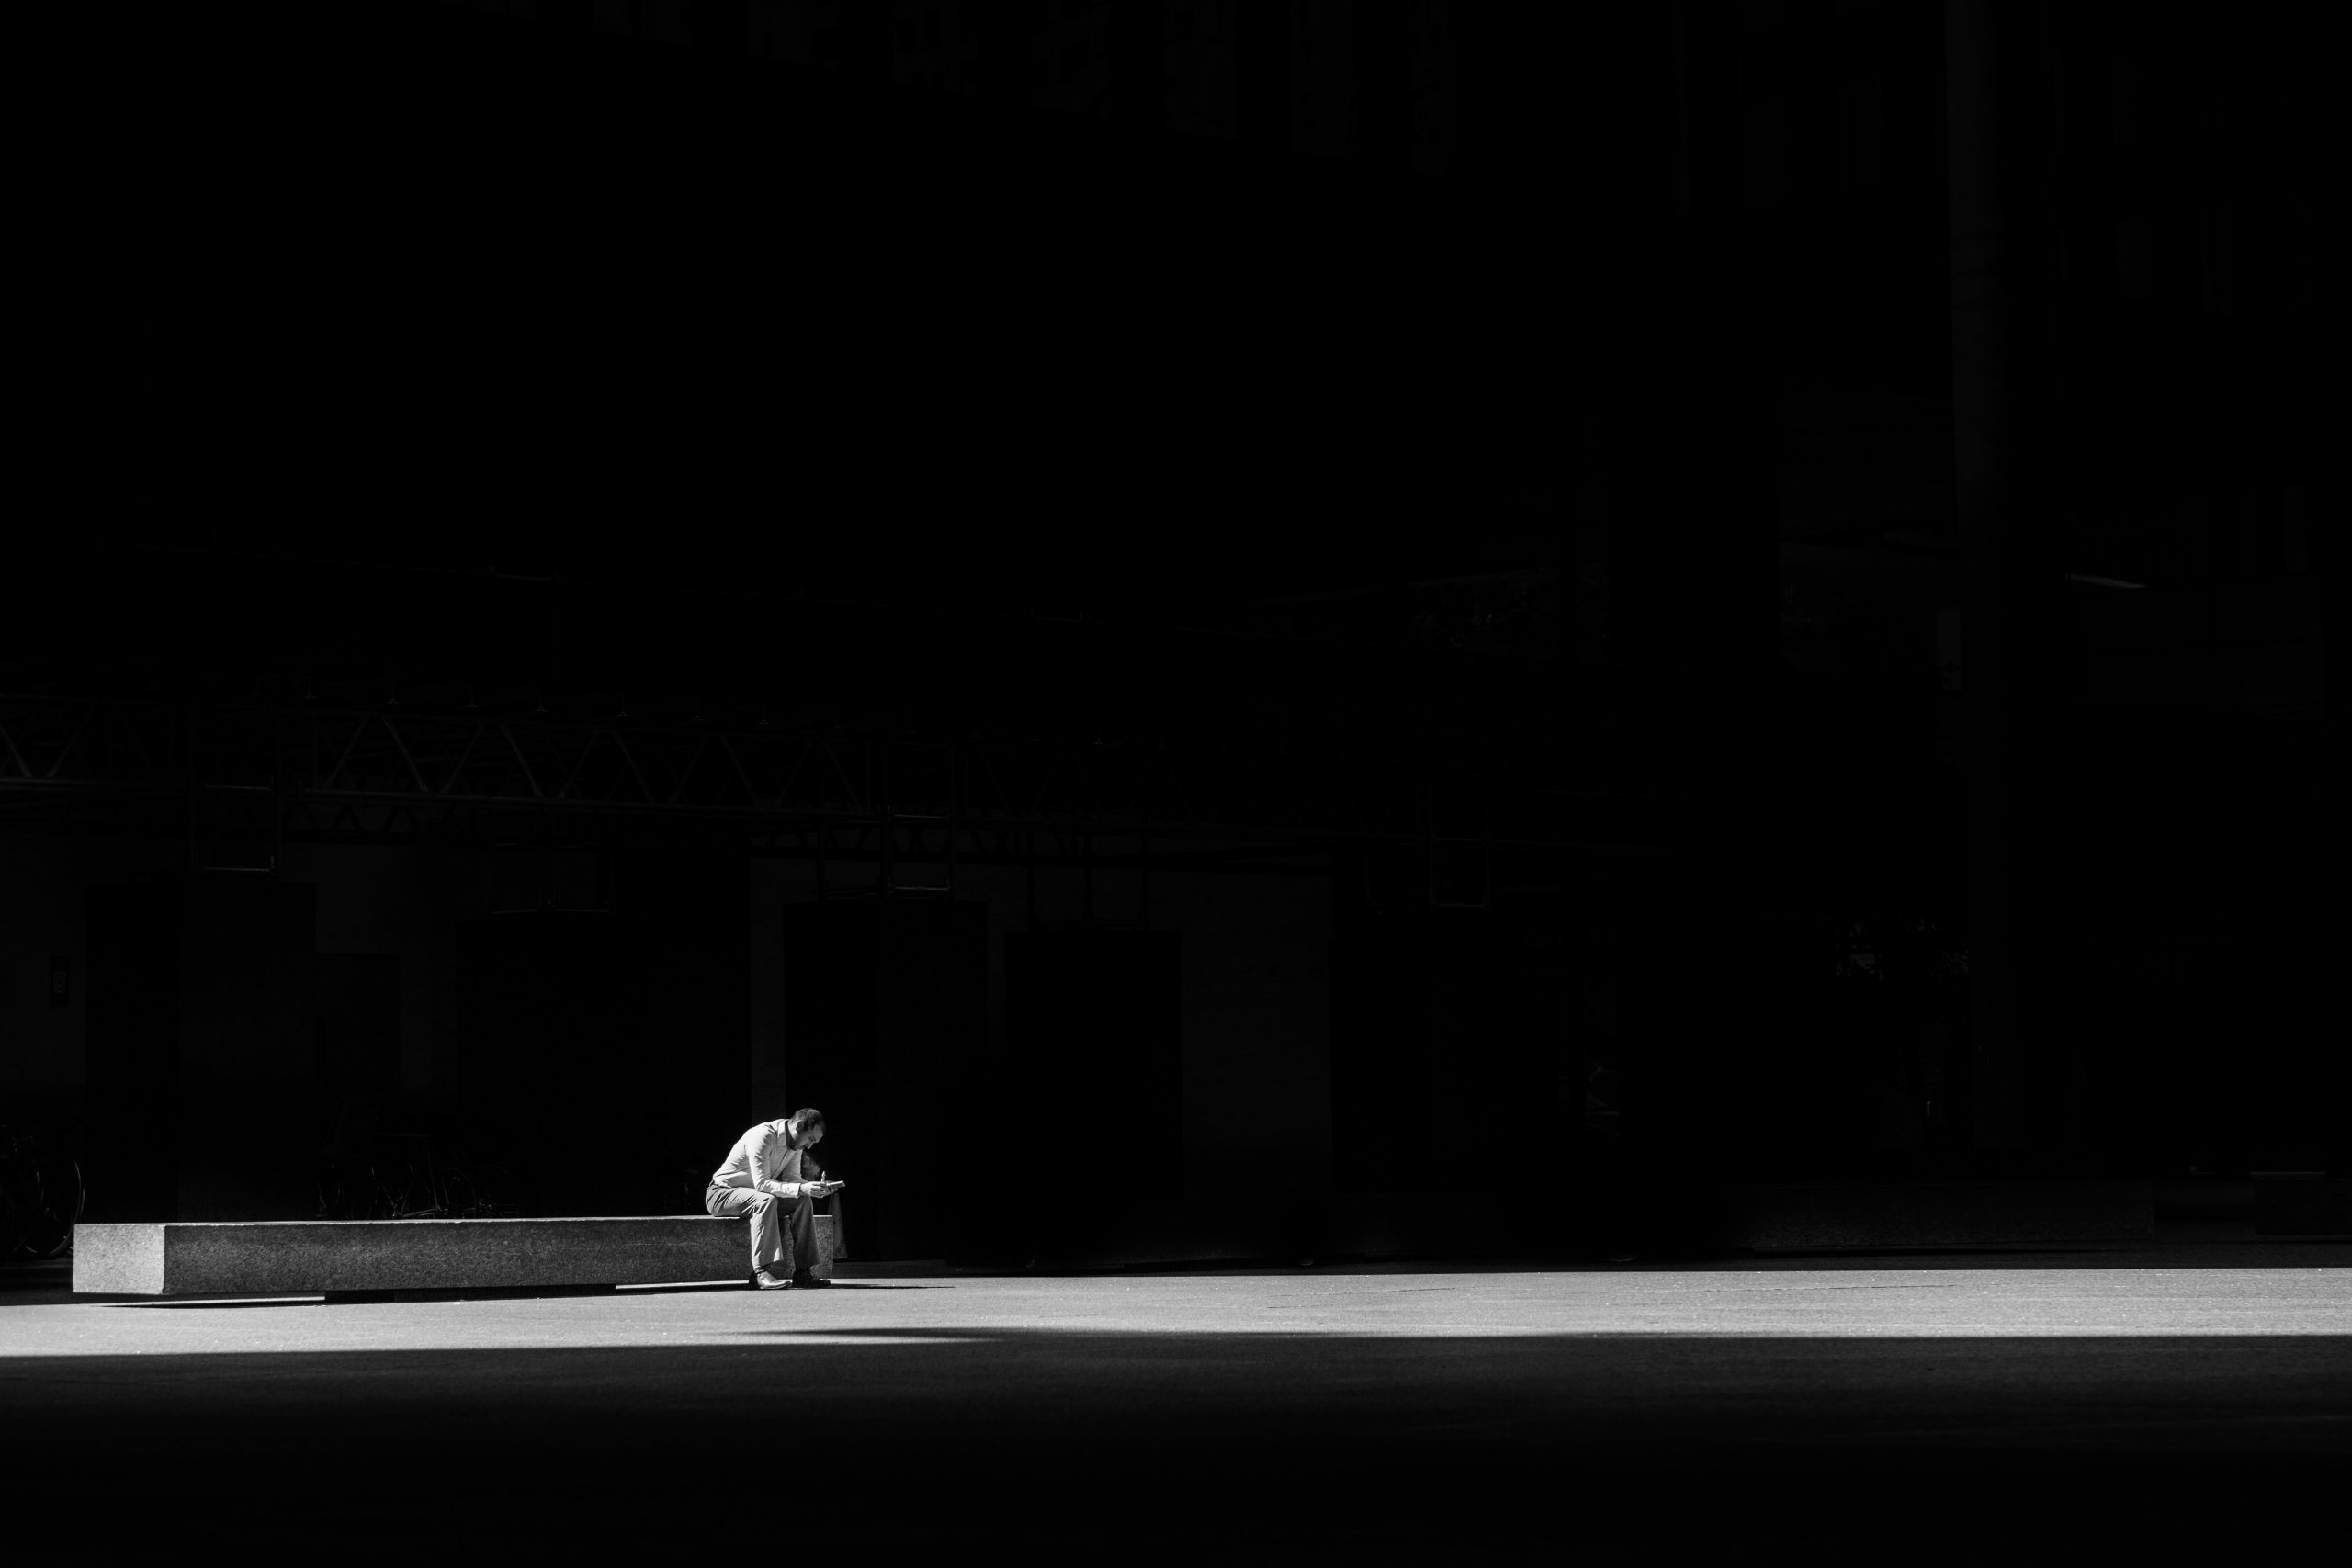 Lone person on bench